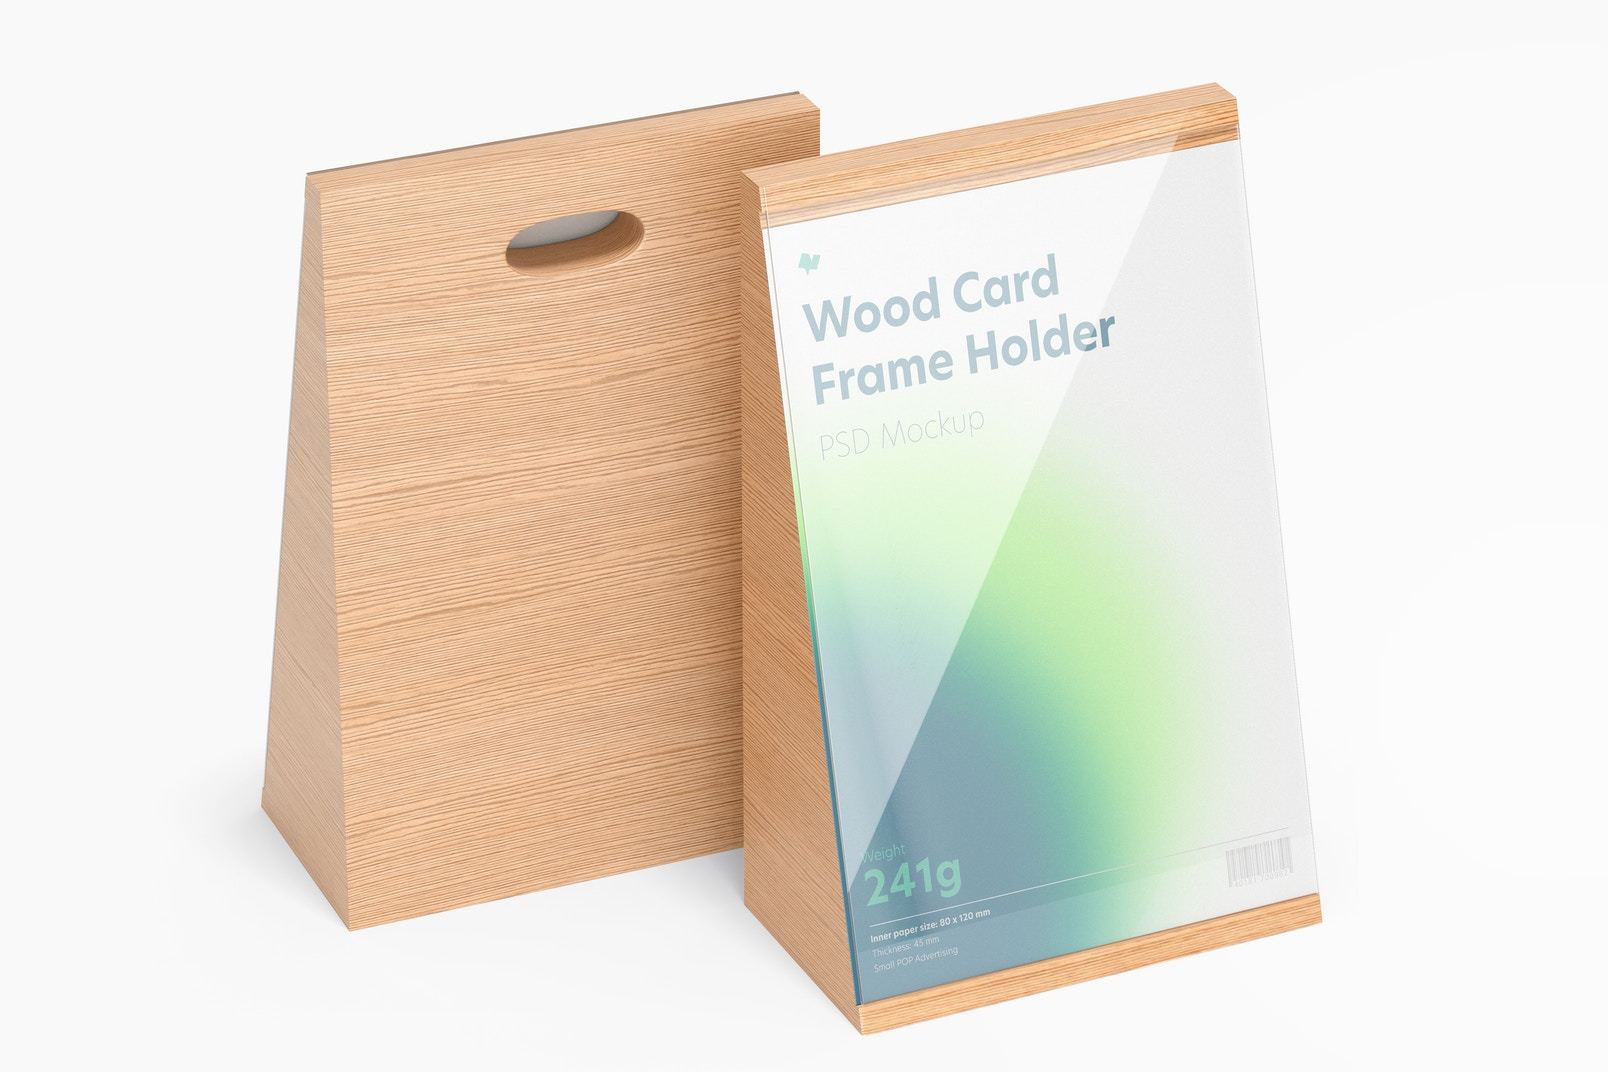 Wood Card Frame Holders Mockup, Right View